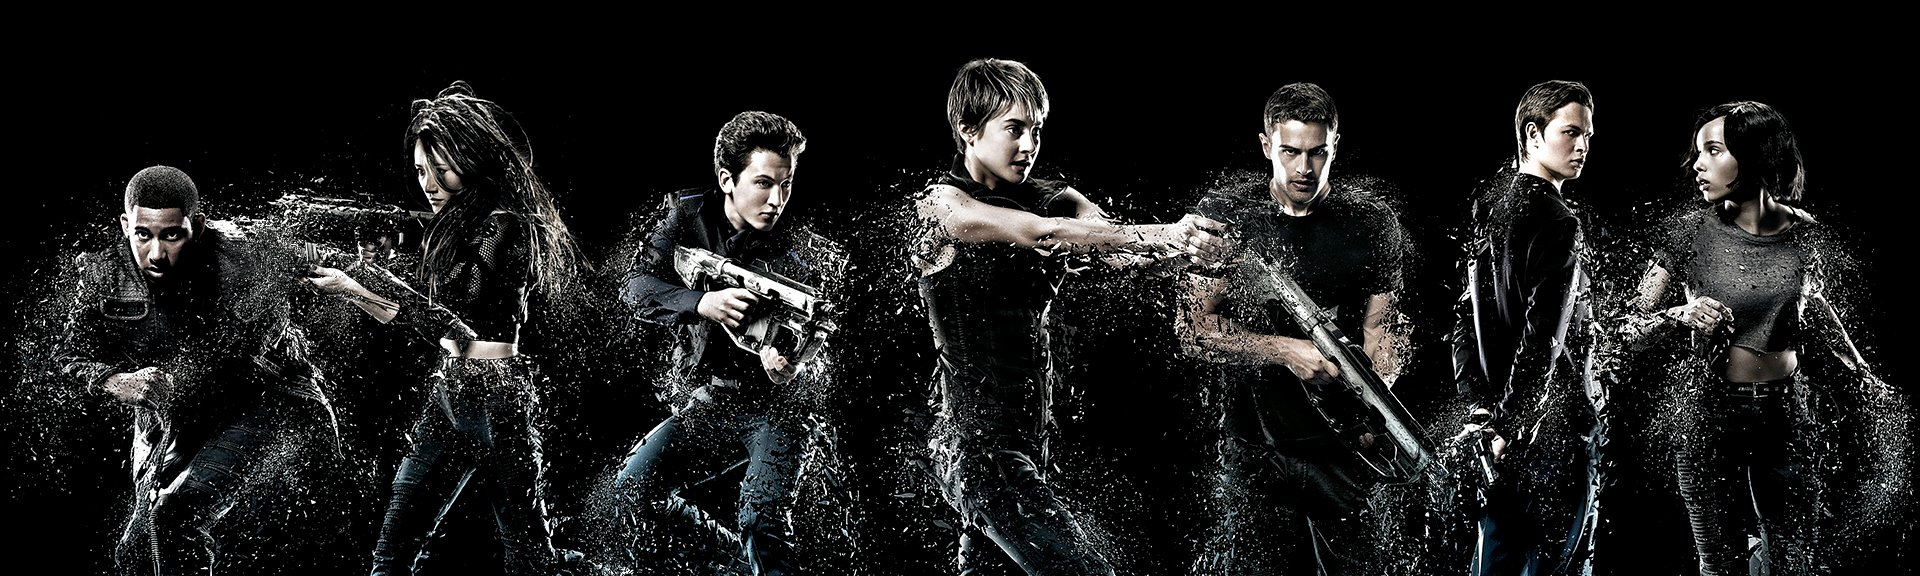 Film: Insurgent feature image